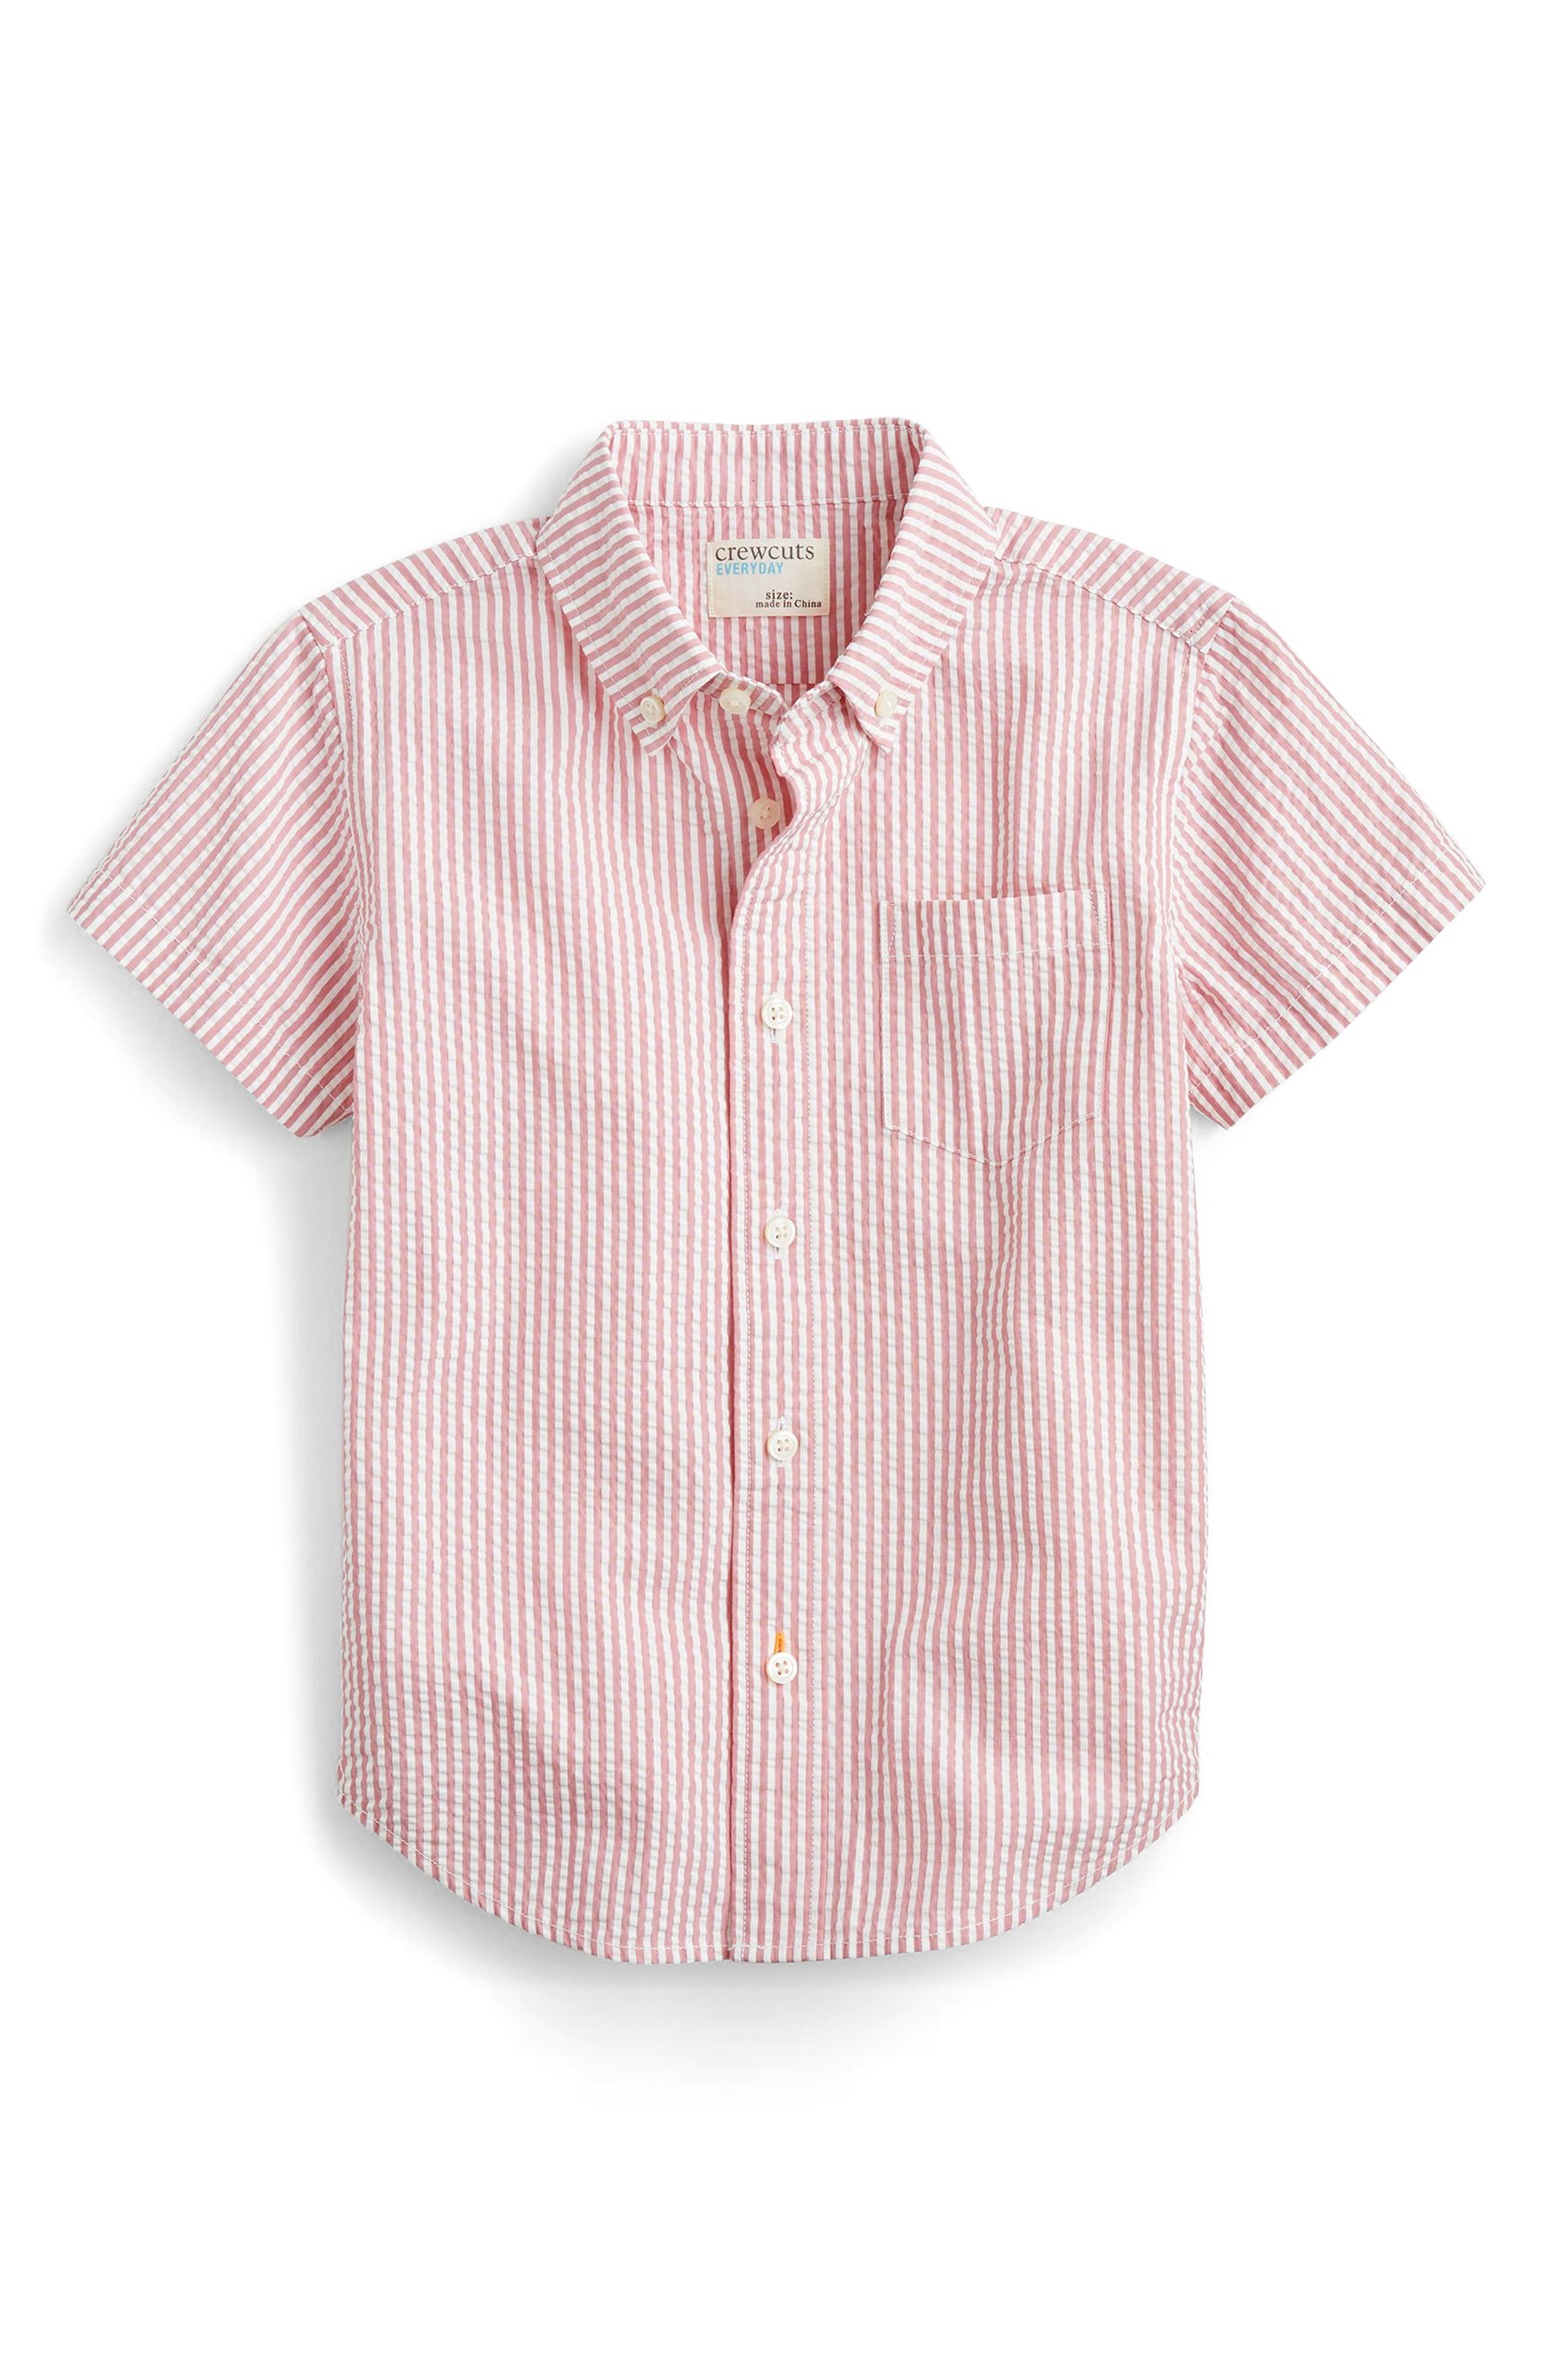 Seersucker Shirt,                         Main,                         color, 650